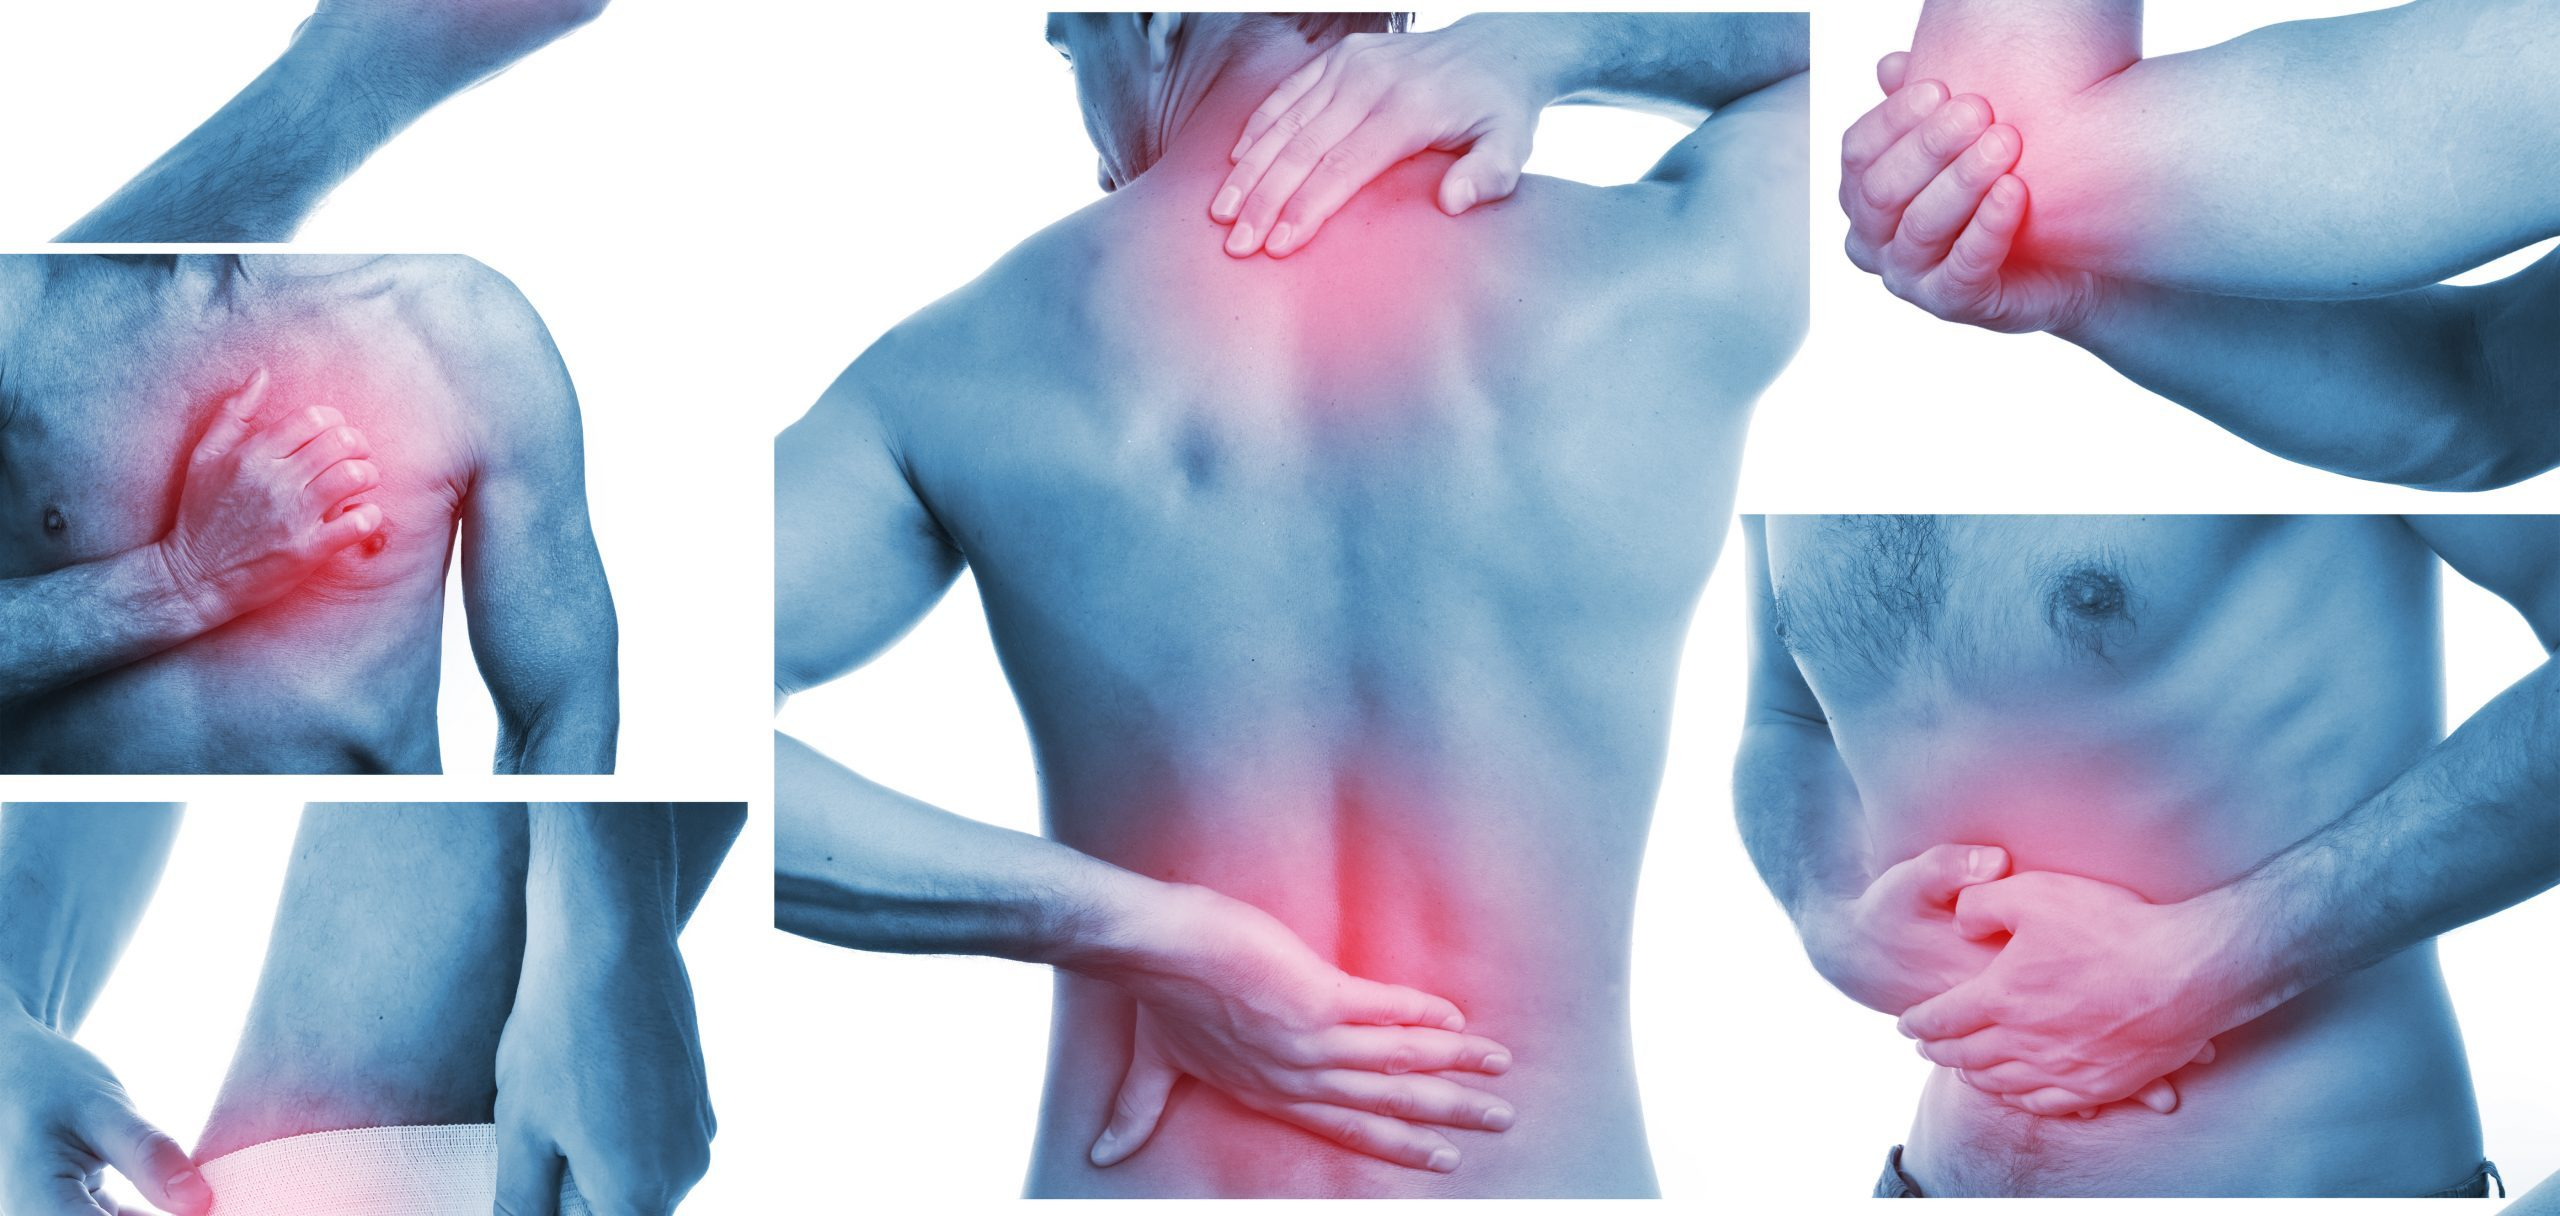 Delayed Onset Muscle Sore or injury